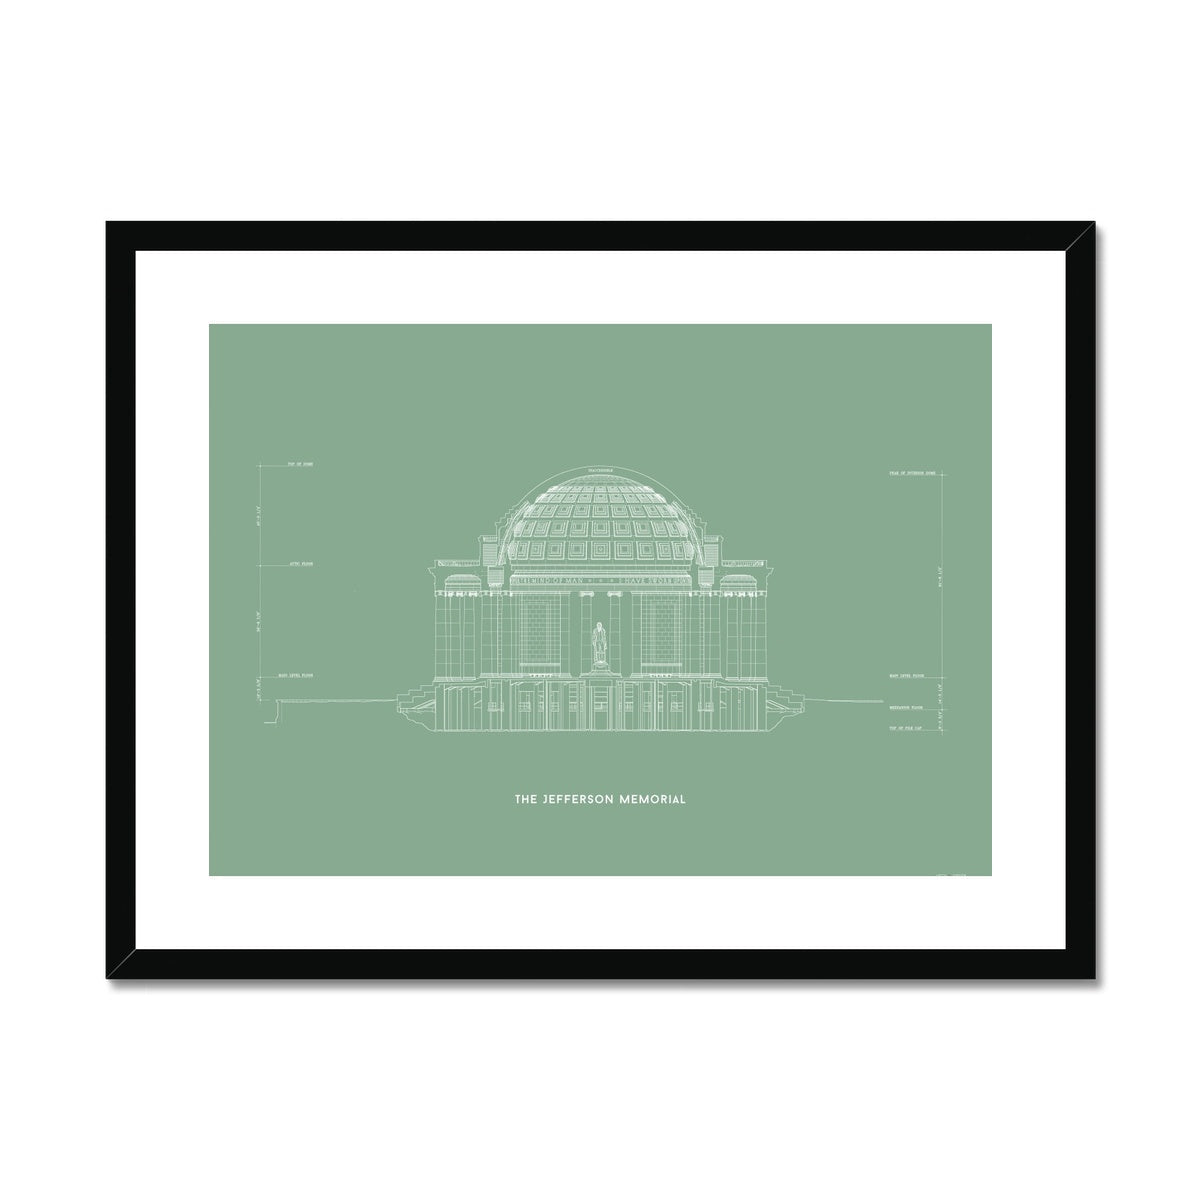 The Jefferson Memorial North Elevation Cross Section - Green -  Framed & Mounted Print